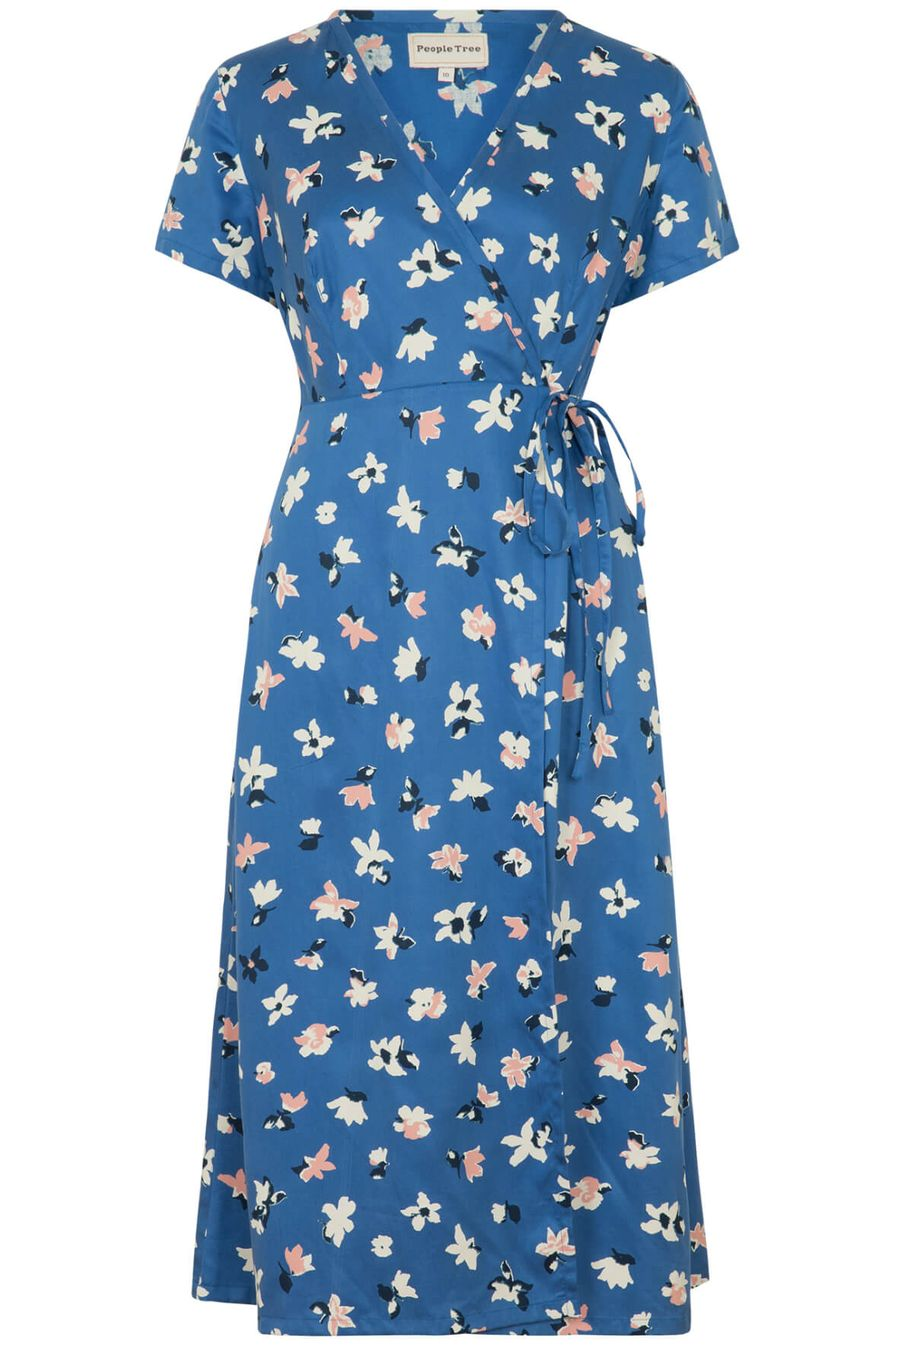 Style Theory_people-tree-martina-floral-dress-1